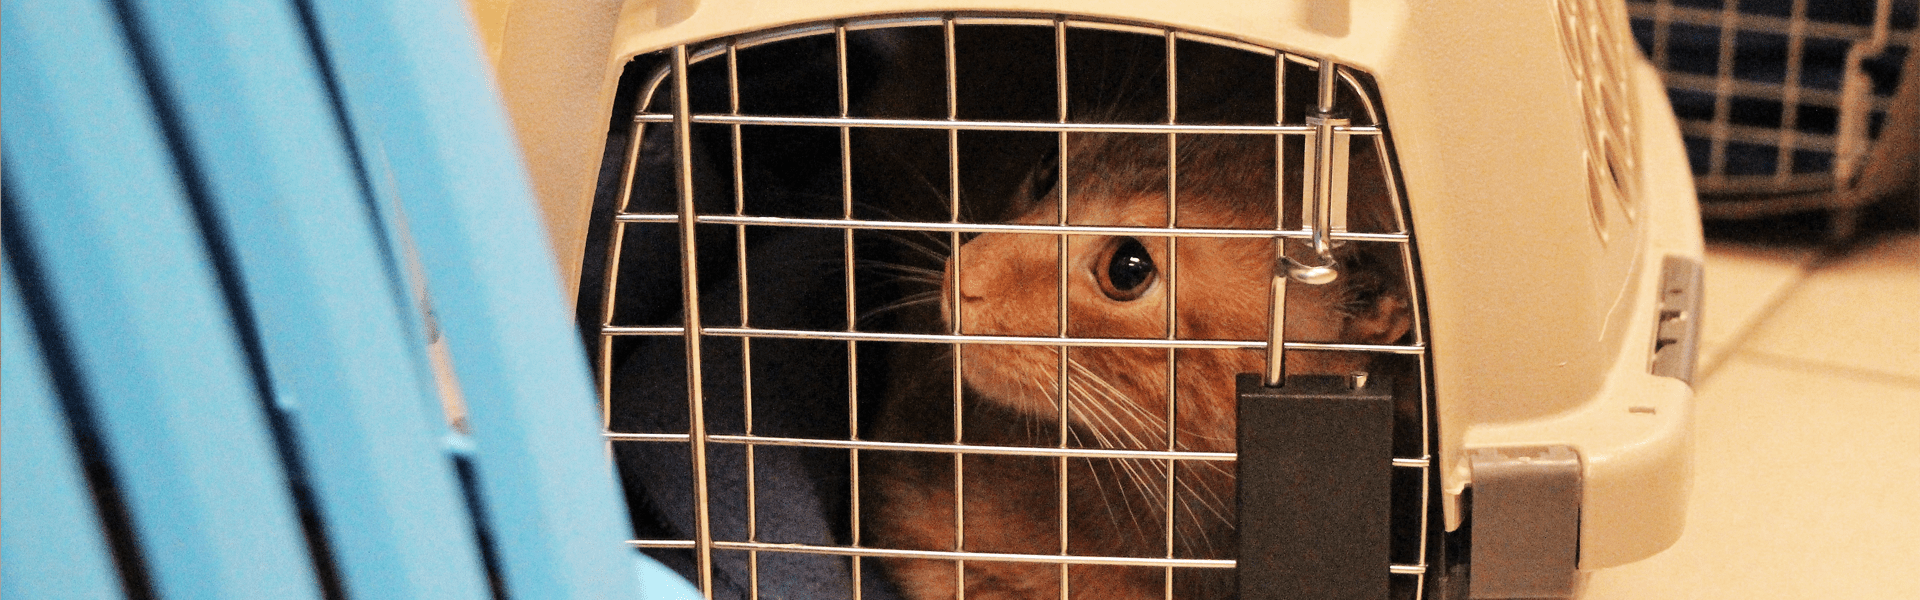 cat in carrier looking out